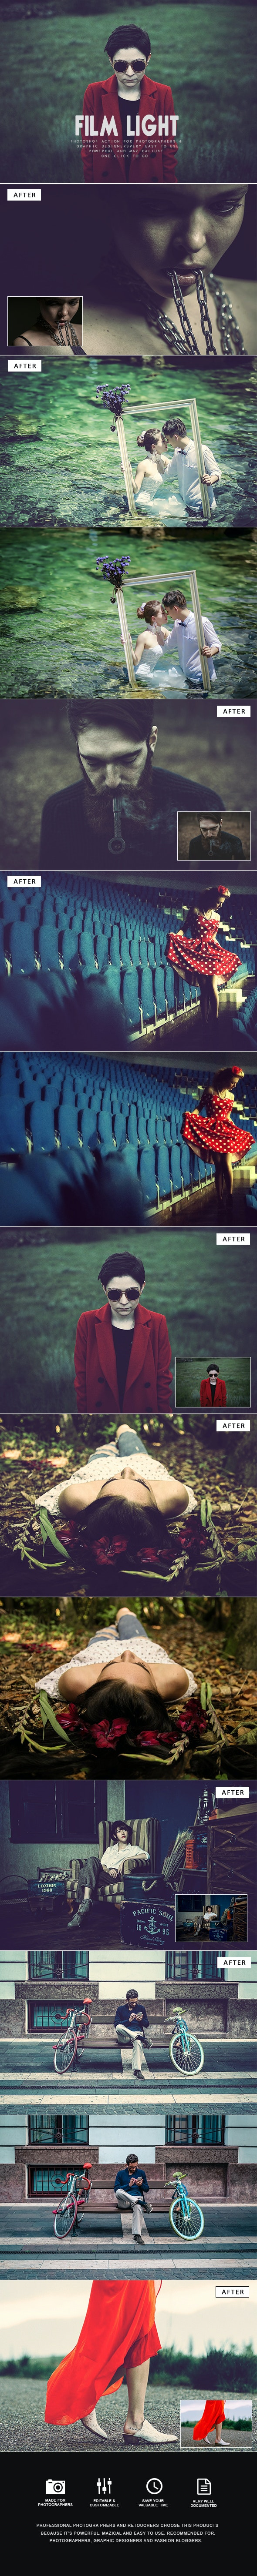 Film Light Photoshop Action - Photo Effects Actions